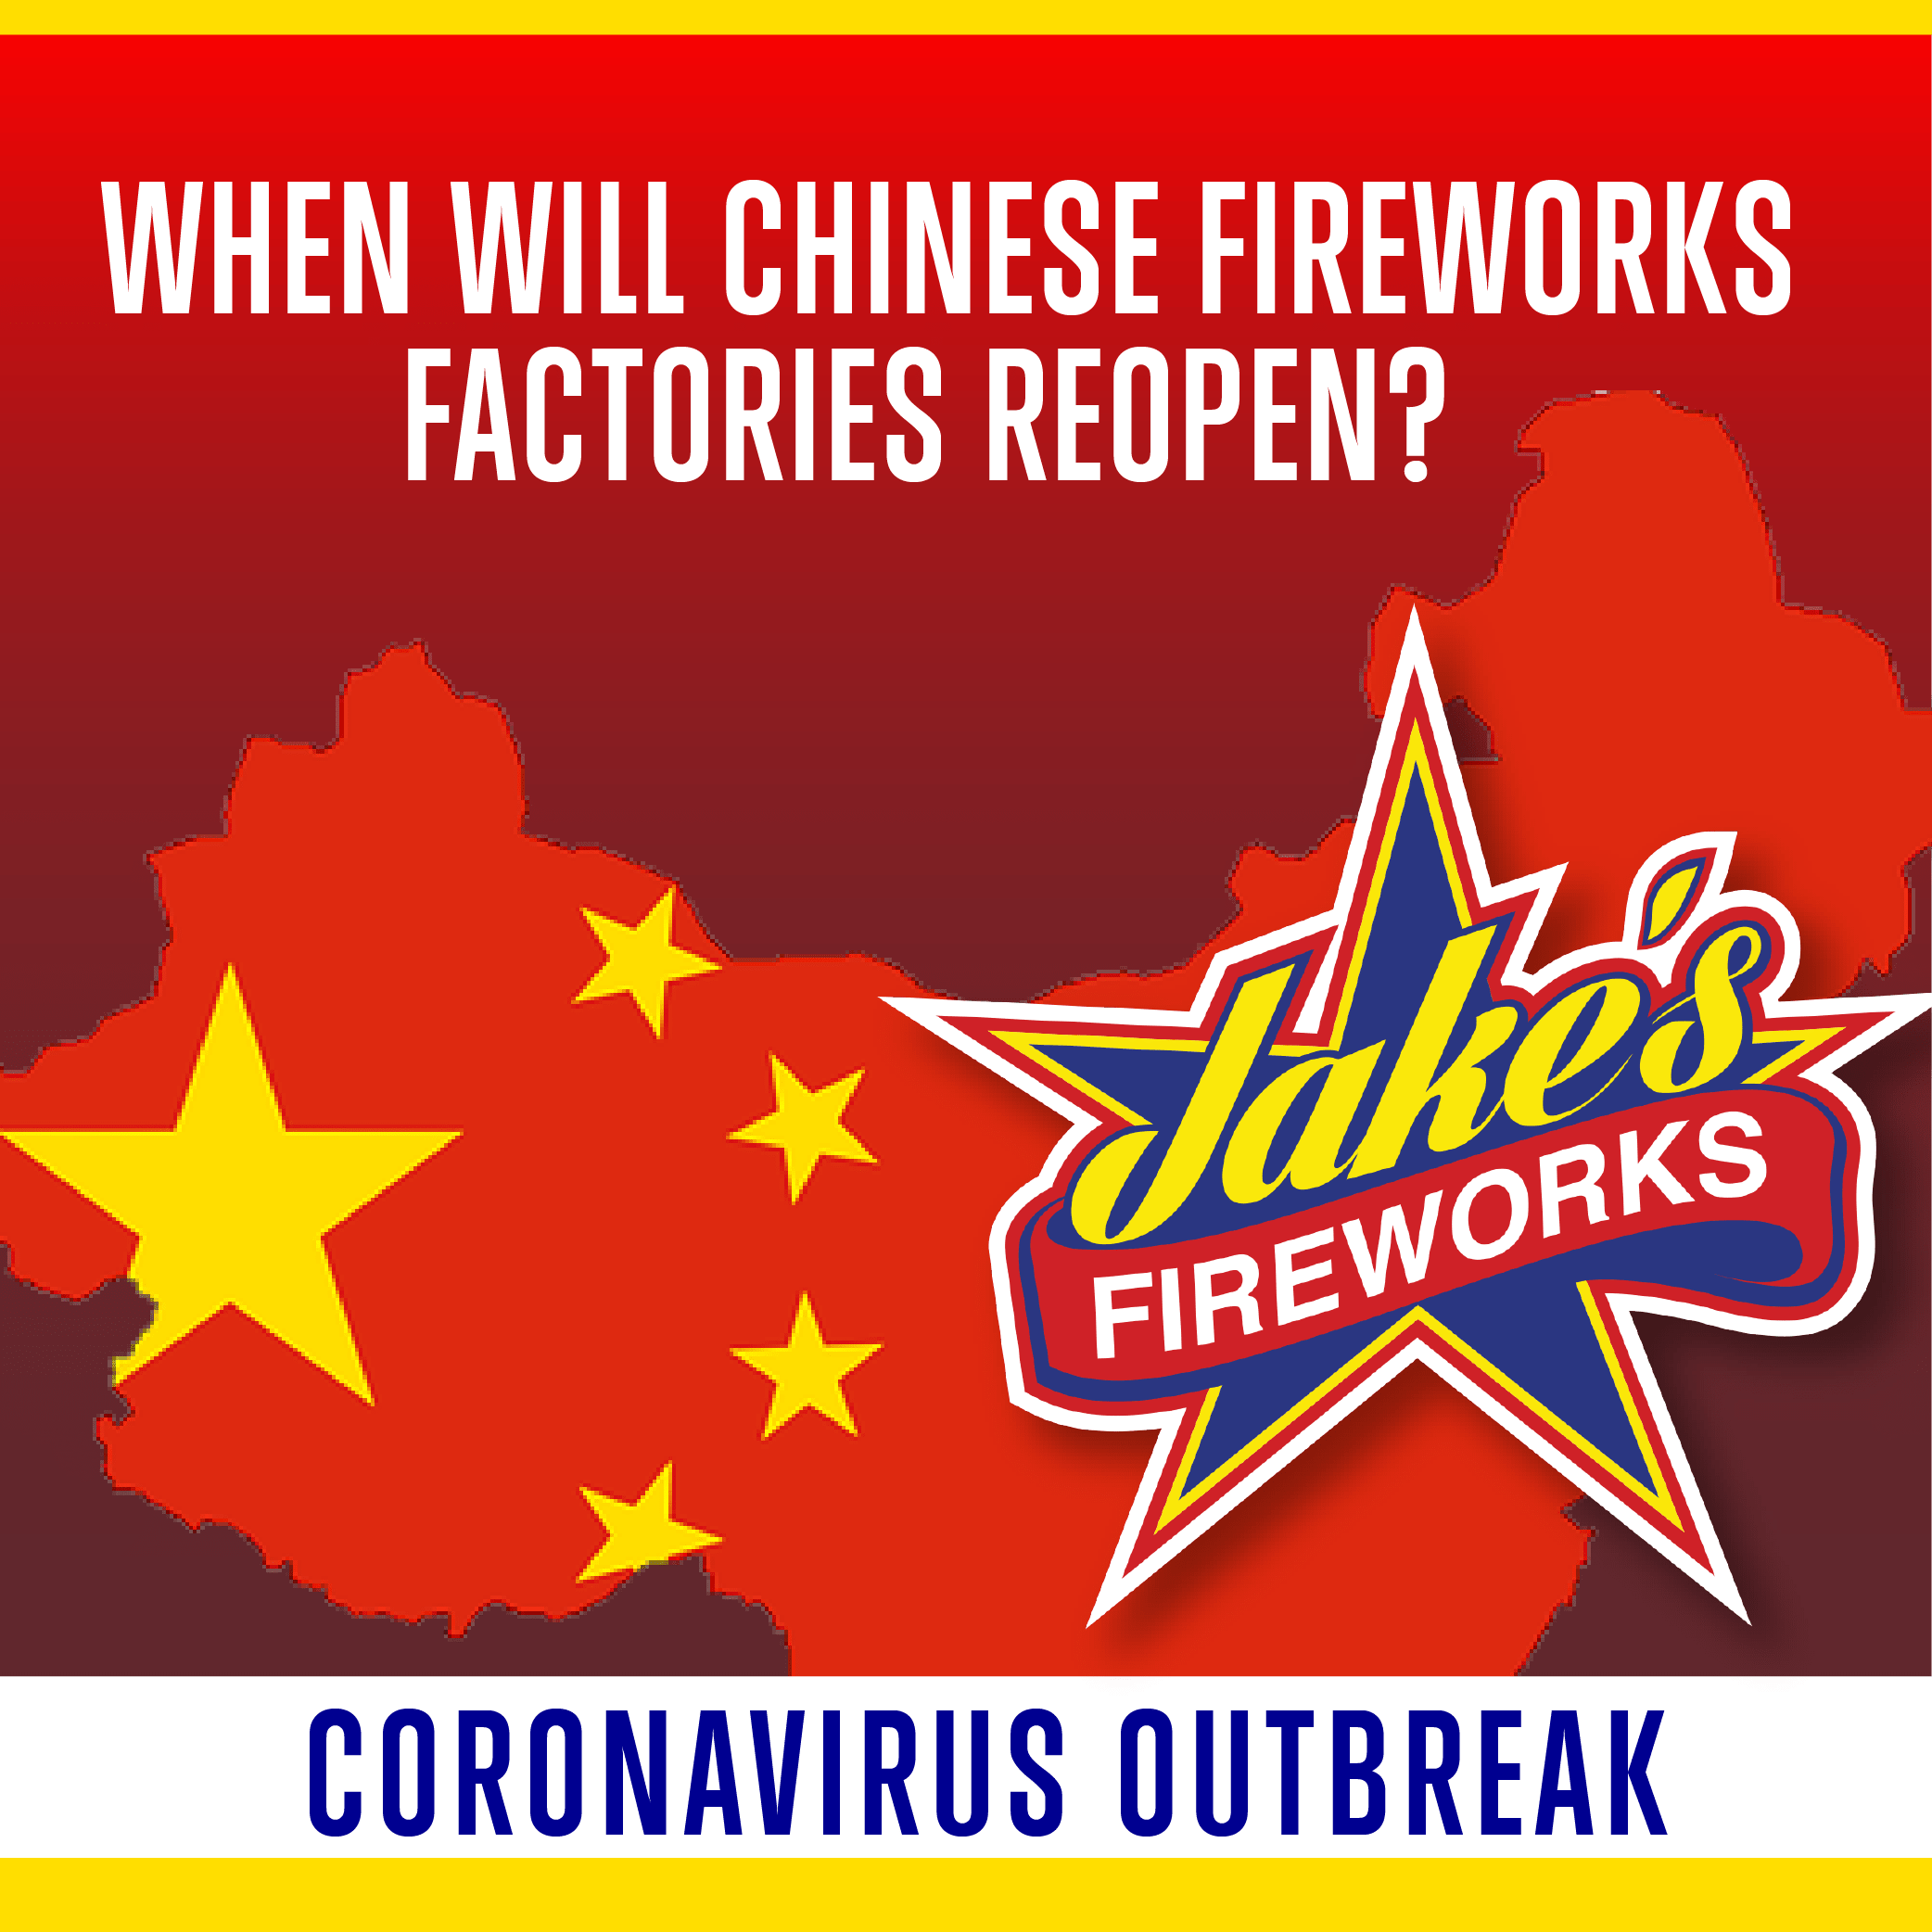 Coronavirus: When Will Chinese Fireworks Factories Reopen?